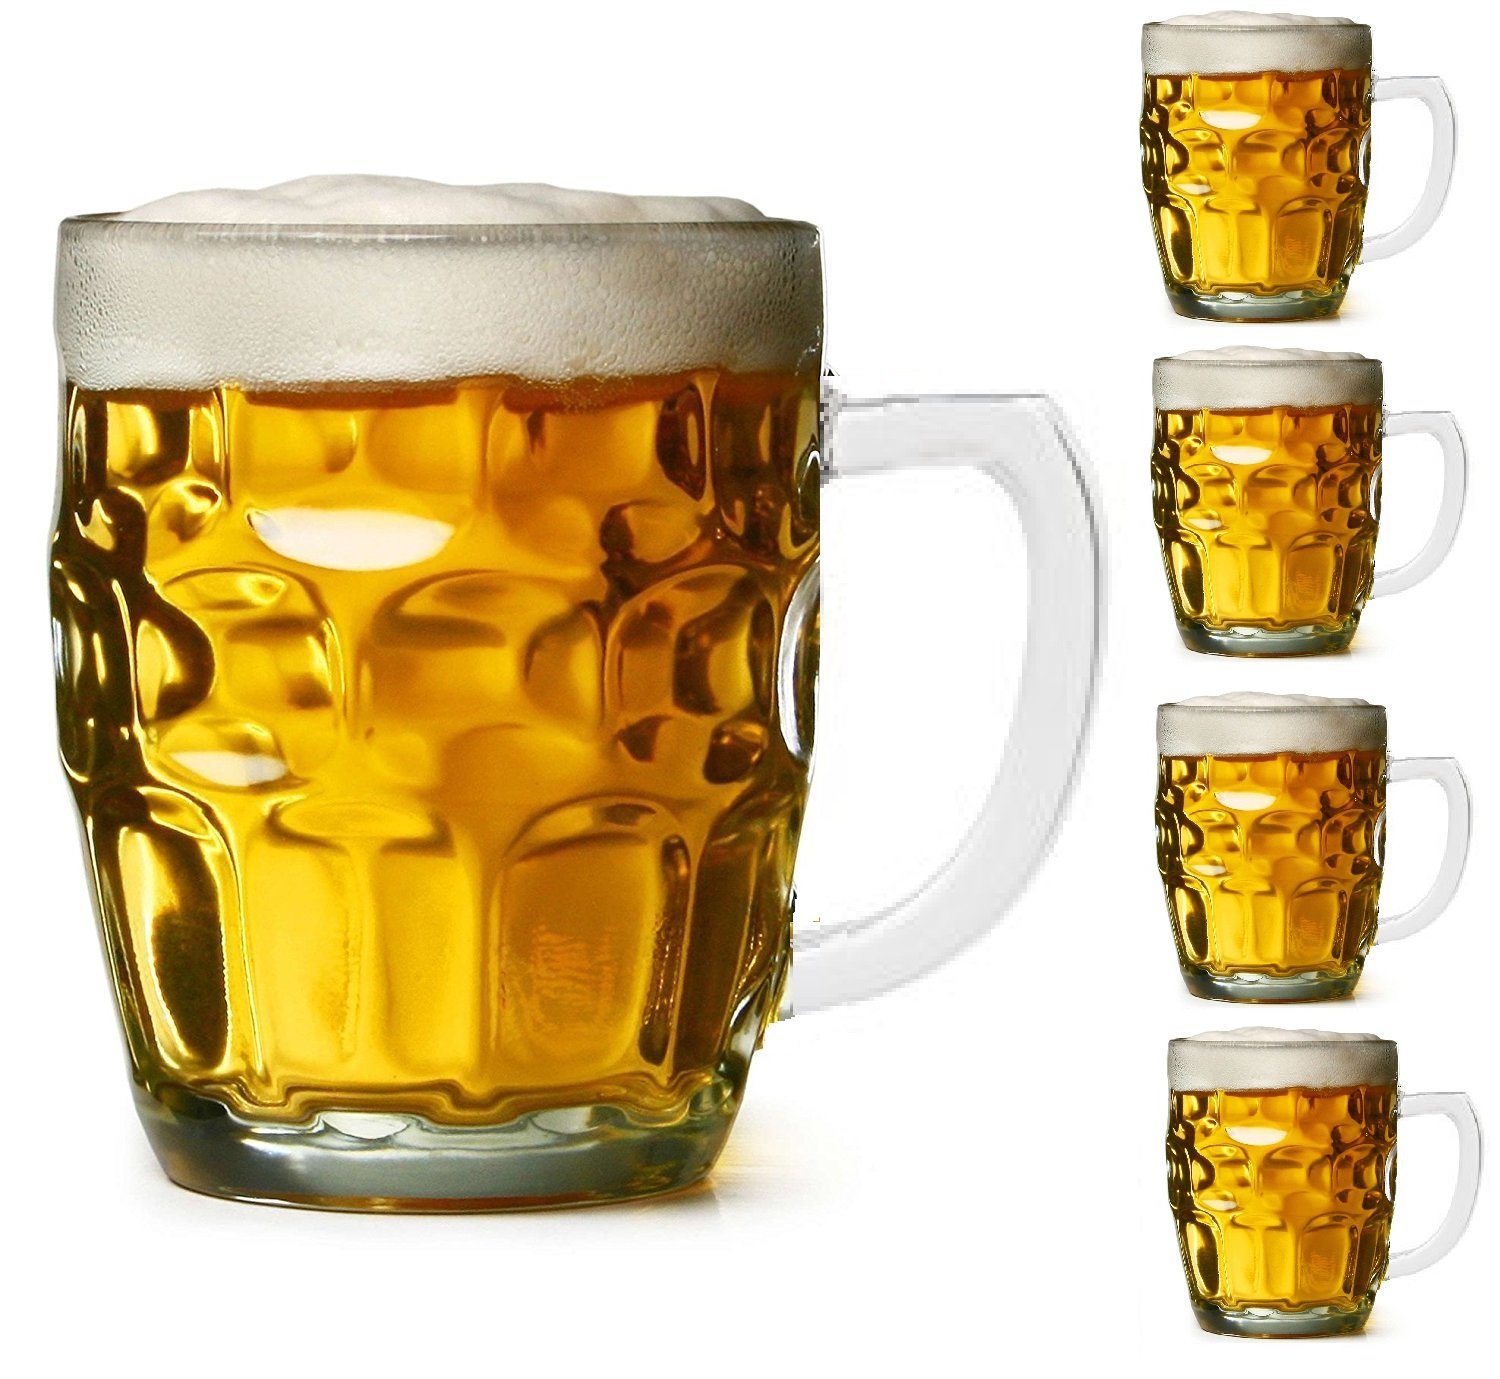 Dimple Stein Beer Mug - 19 Oz by Chefcaptain